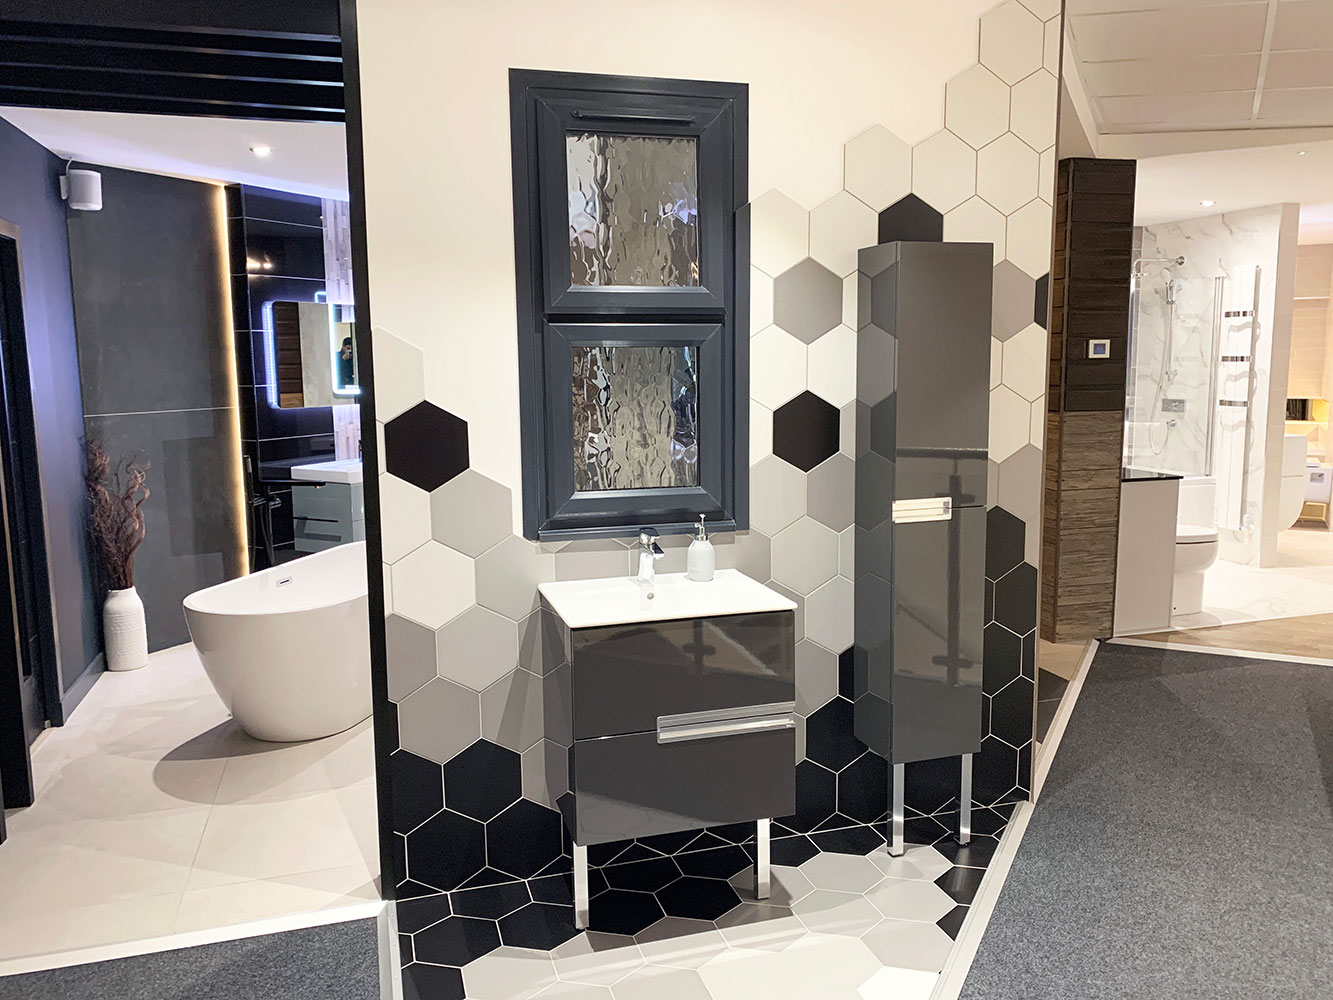 Thistle Bathroom Showroom Aberdeen: Bathroom Gallery 2, Photo 1